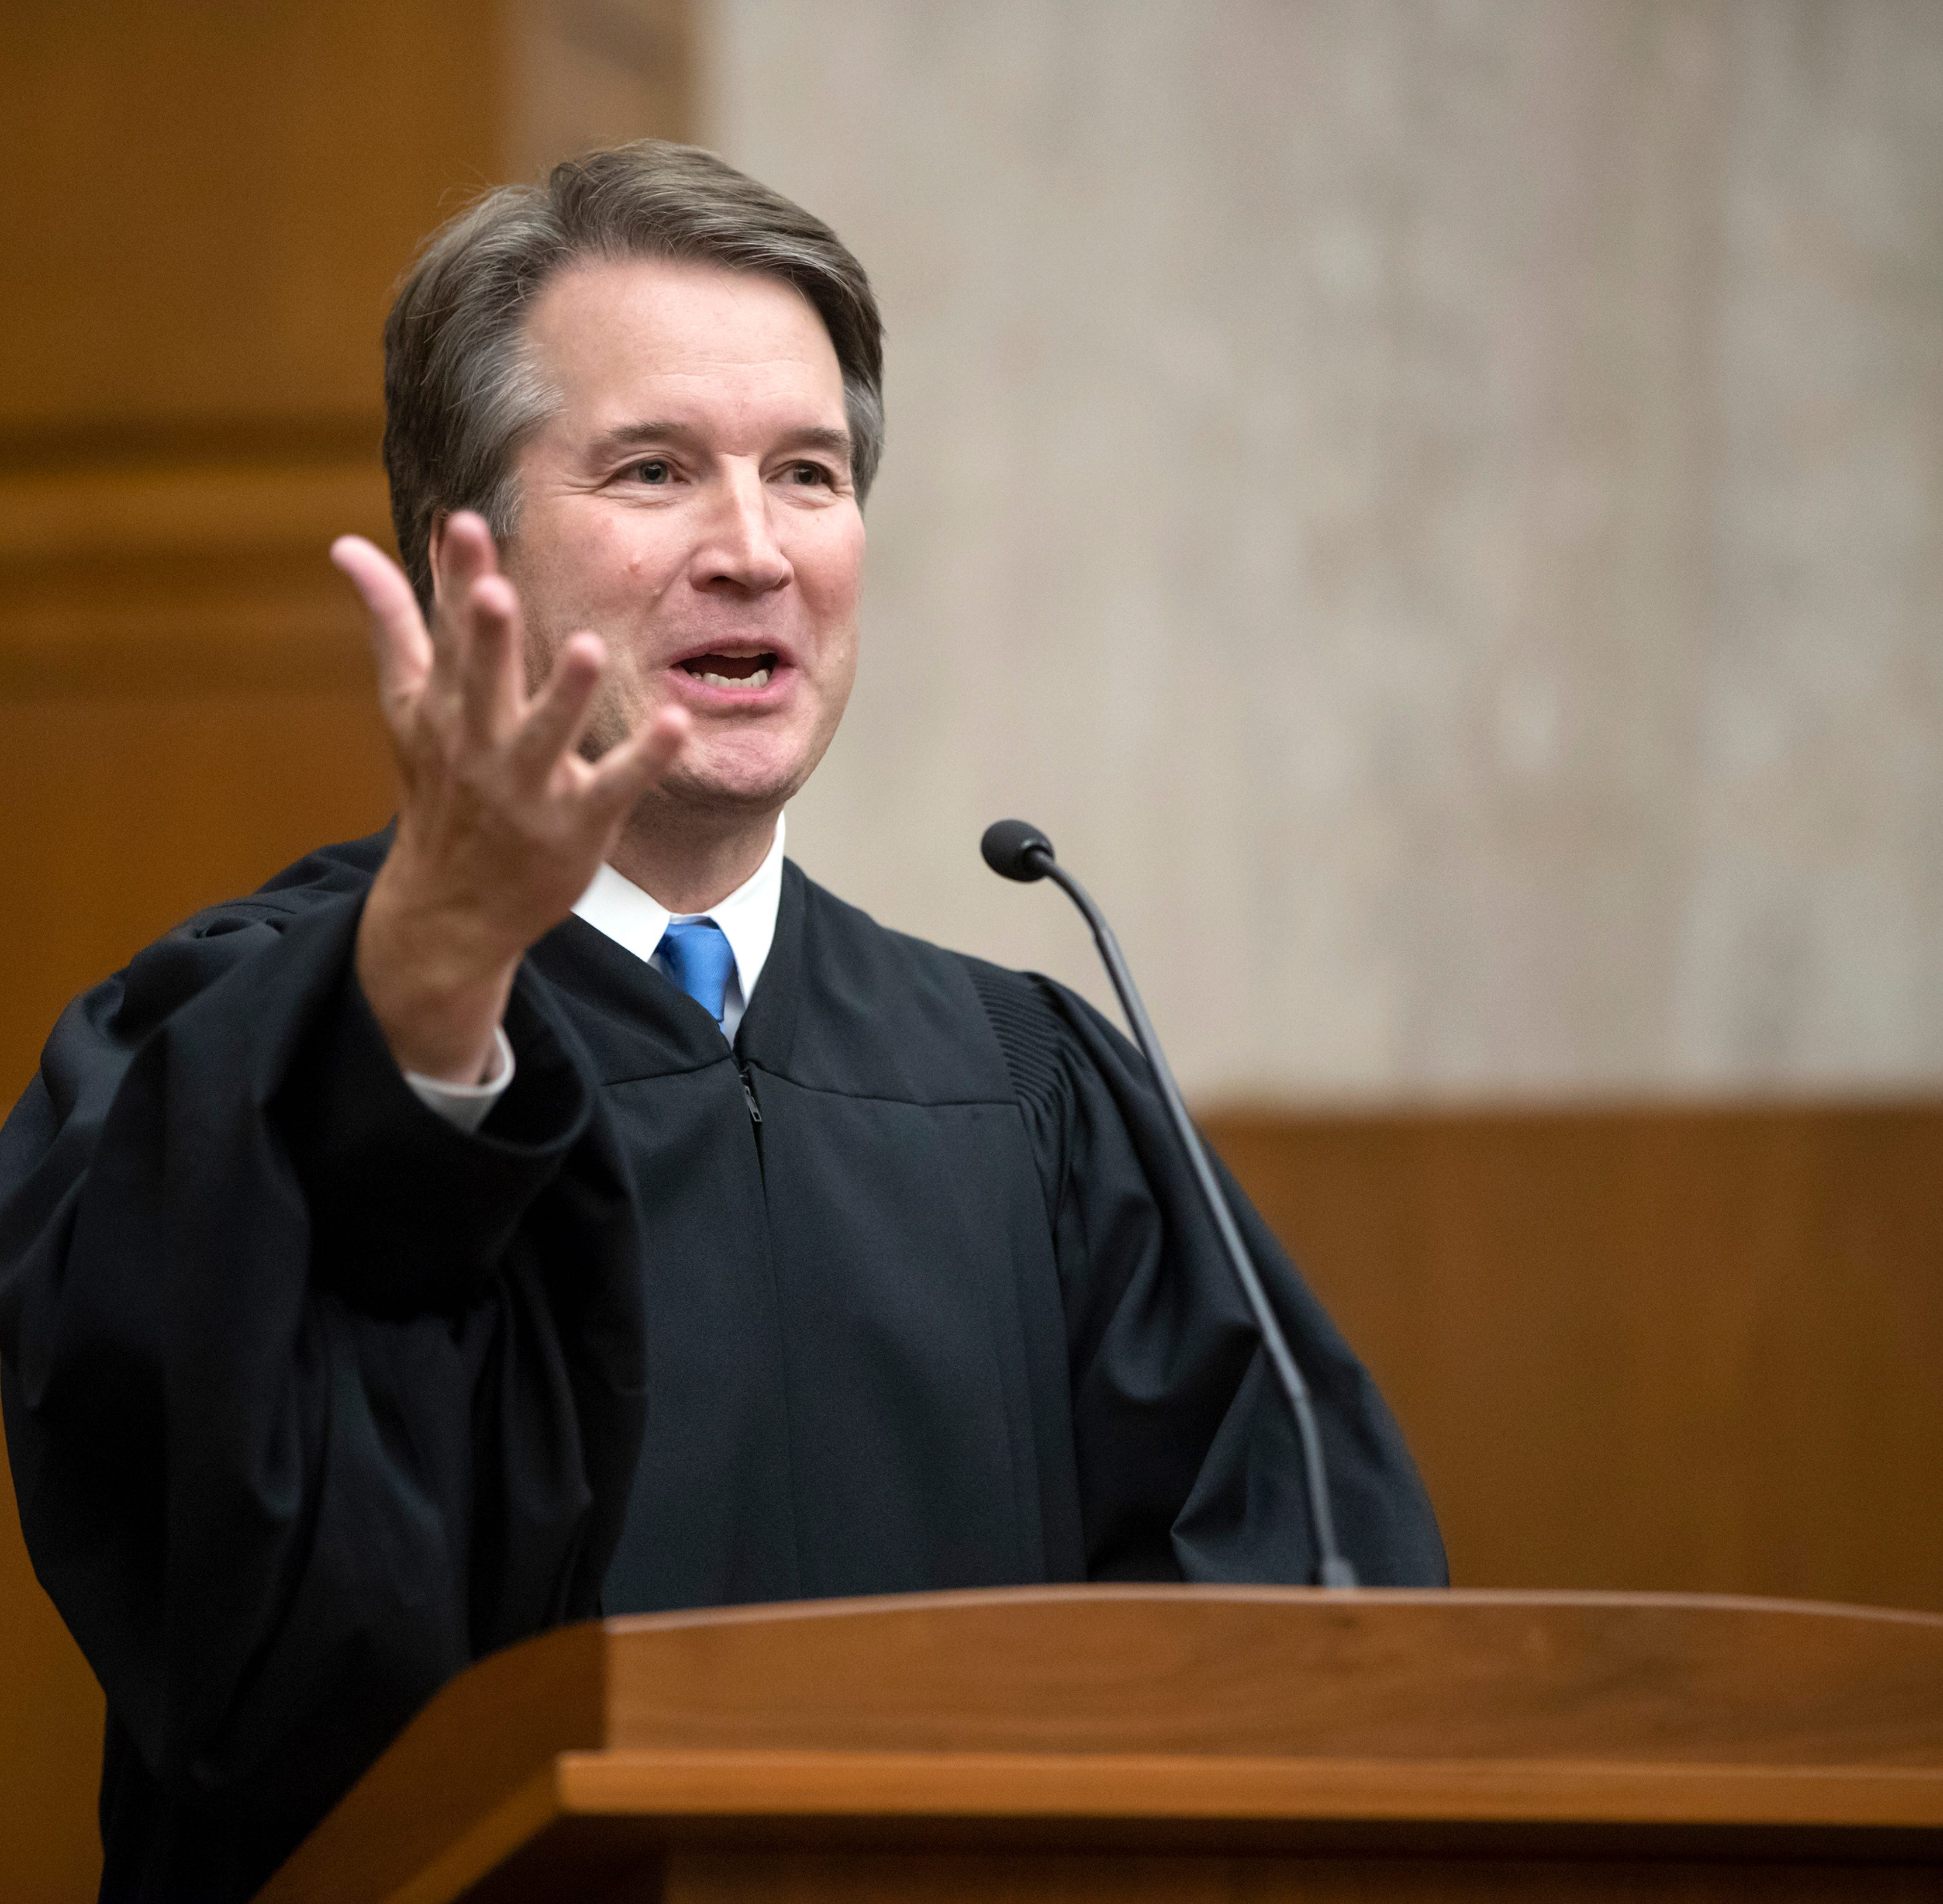 President Donald Trump's Supreme Court nominee, Judge Brett Kavanaugh, speaks as he officiates at the swearing-in of Judge Britt Grant to take a seat on the U.S. Court of Appeals for the 11th Circuit on Tuesday, Aug. 7.